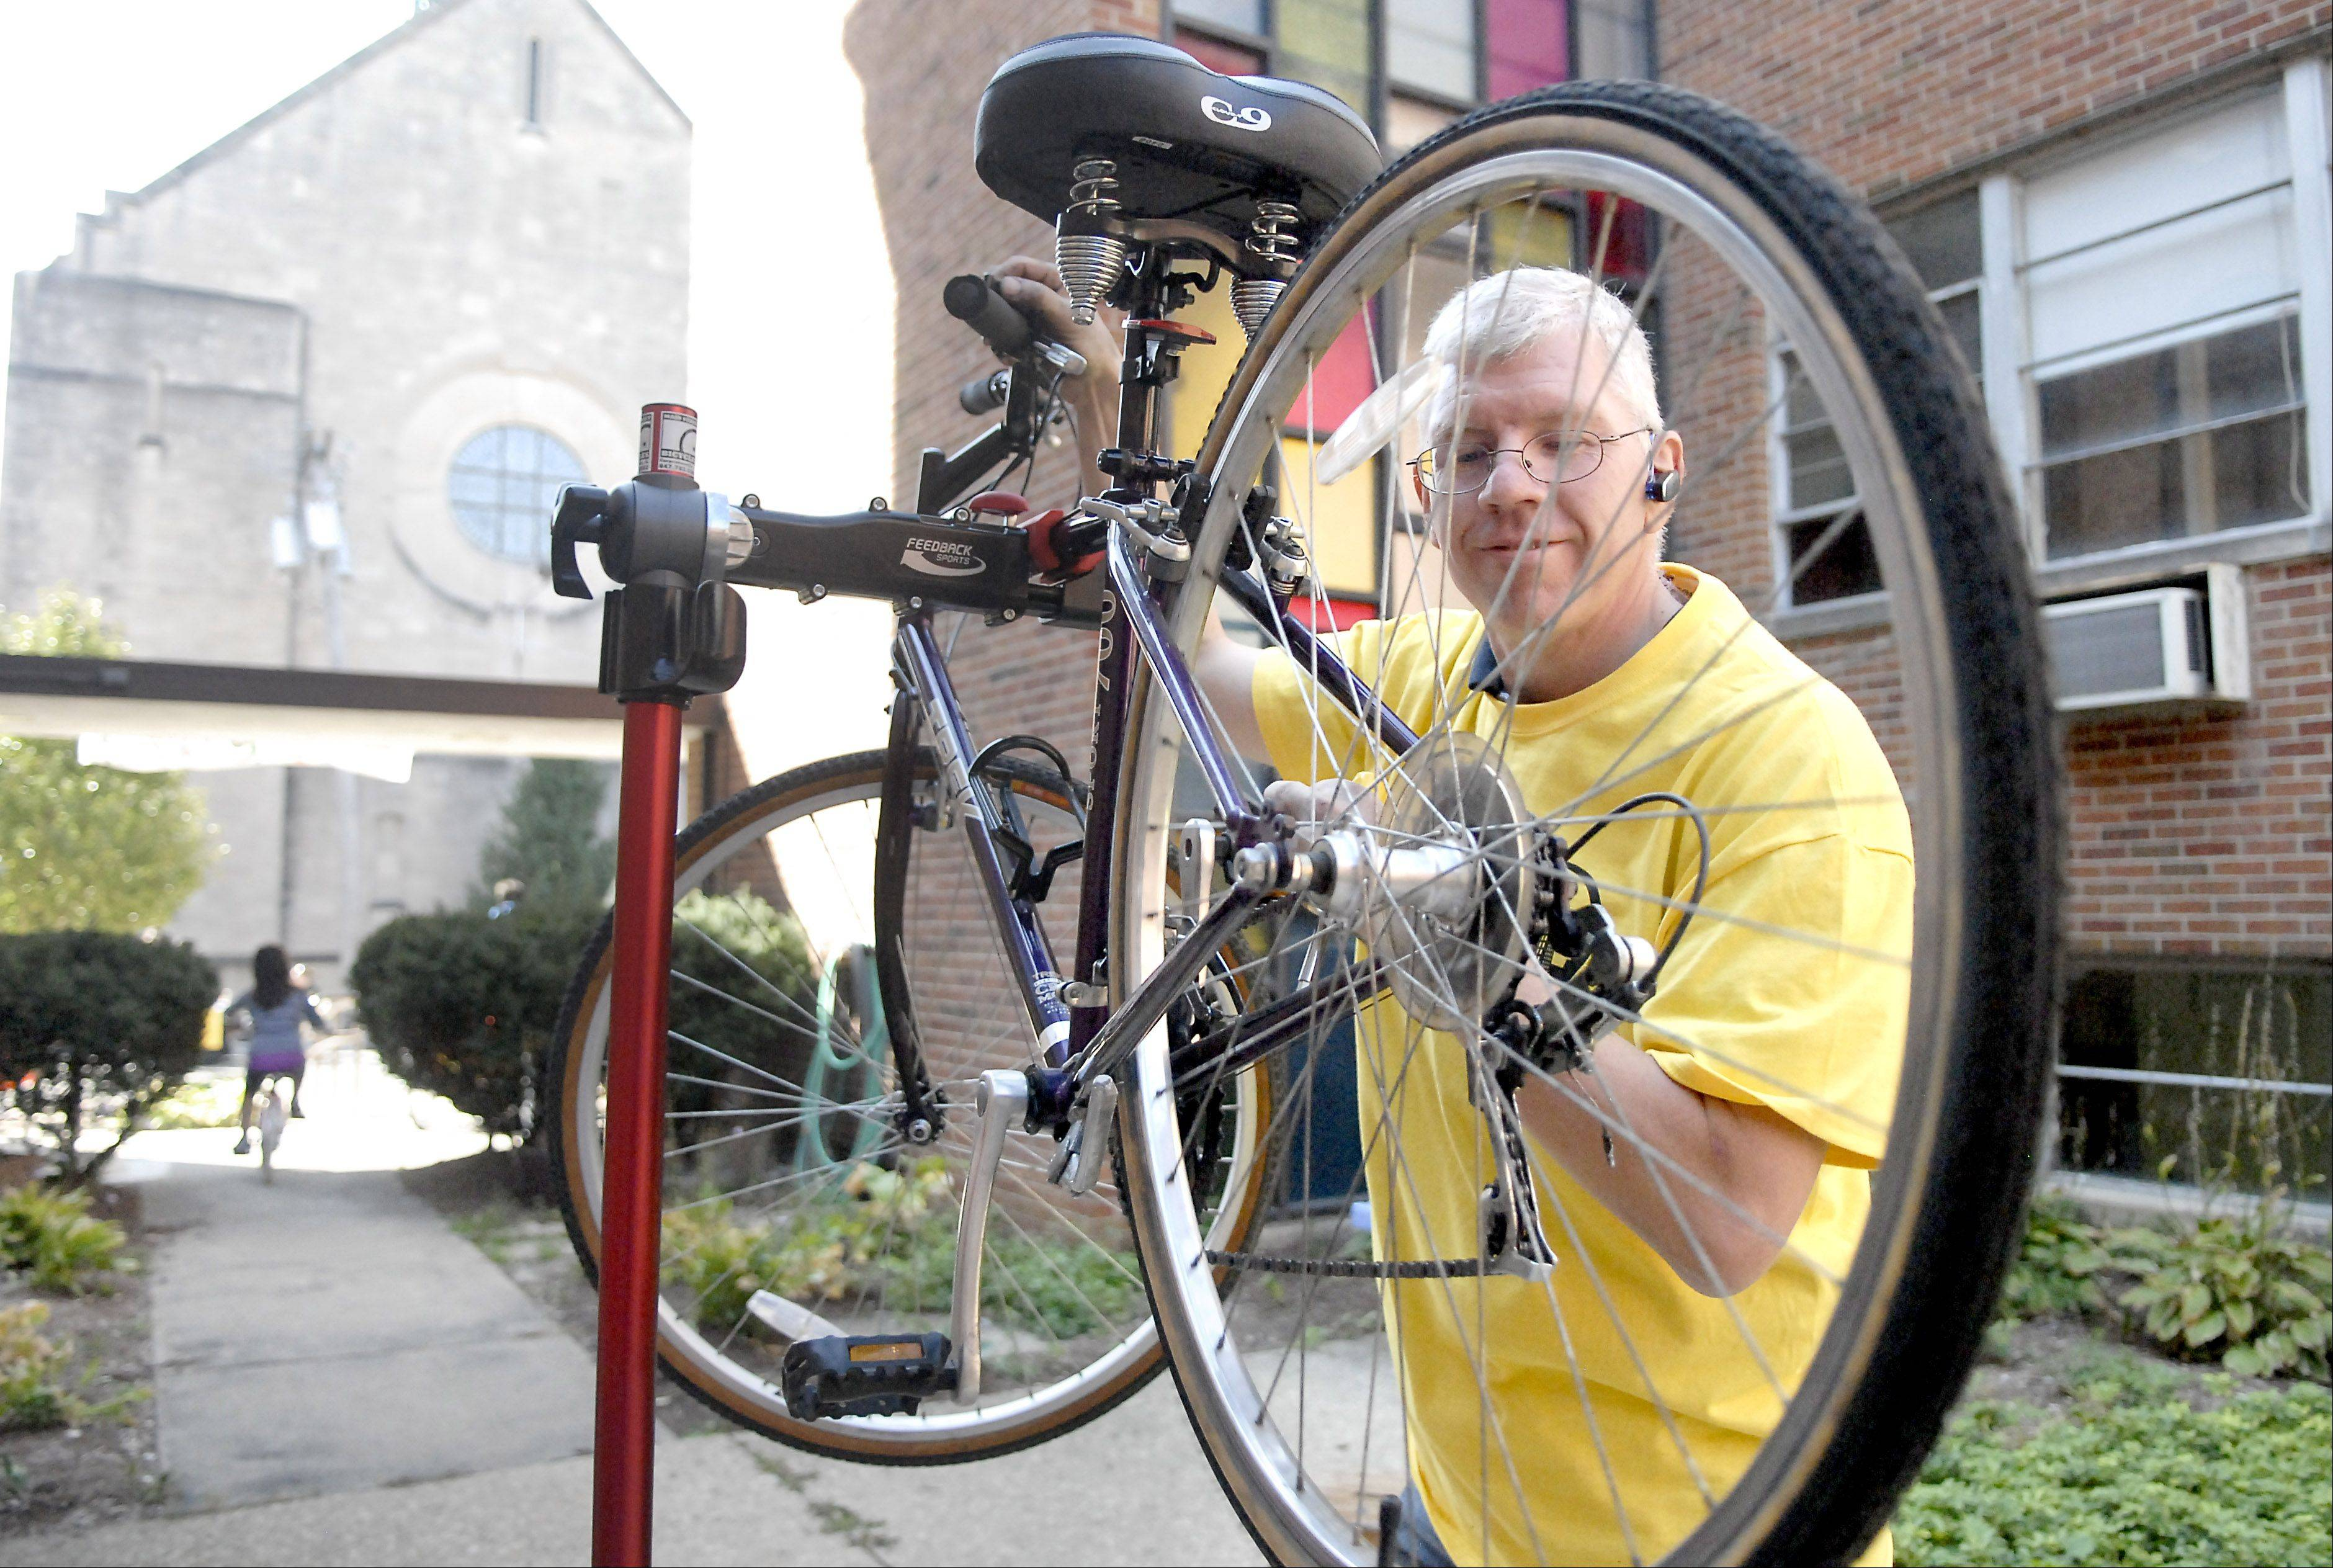 Volunteer Jeff Bratko of East Dundee gets a bike chain running smoothly in the courtyard of Vineyard Church at the Love Elgin Day event last year.